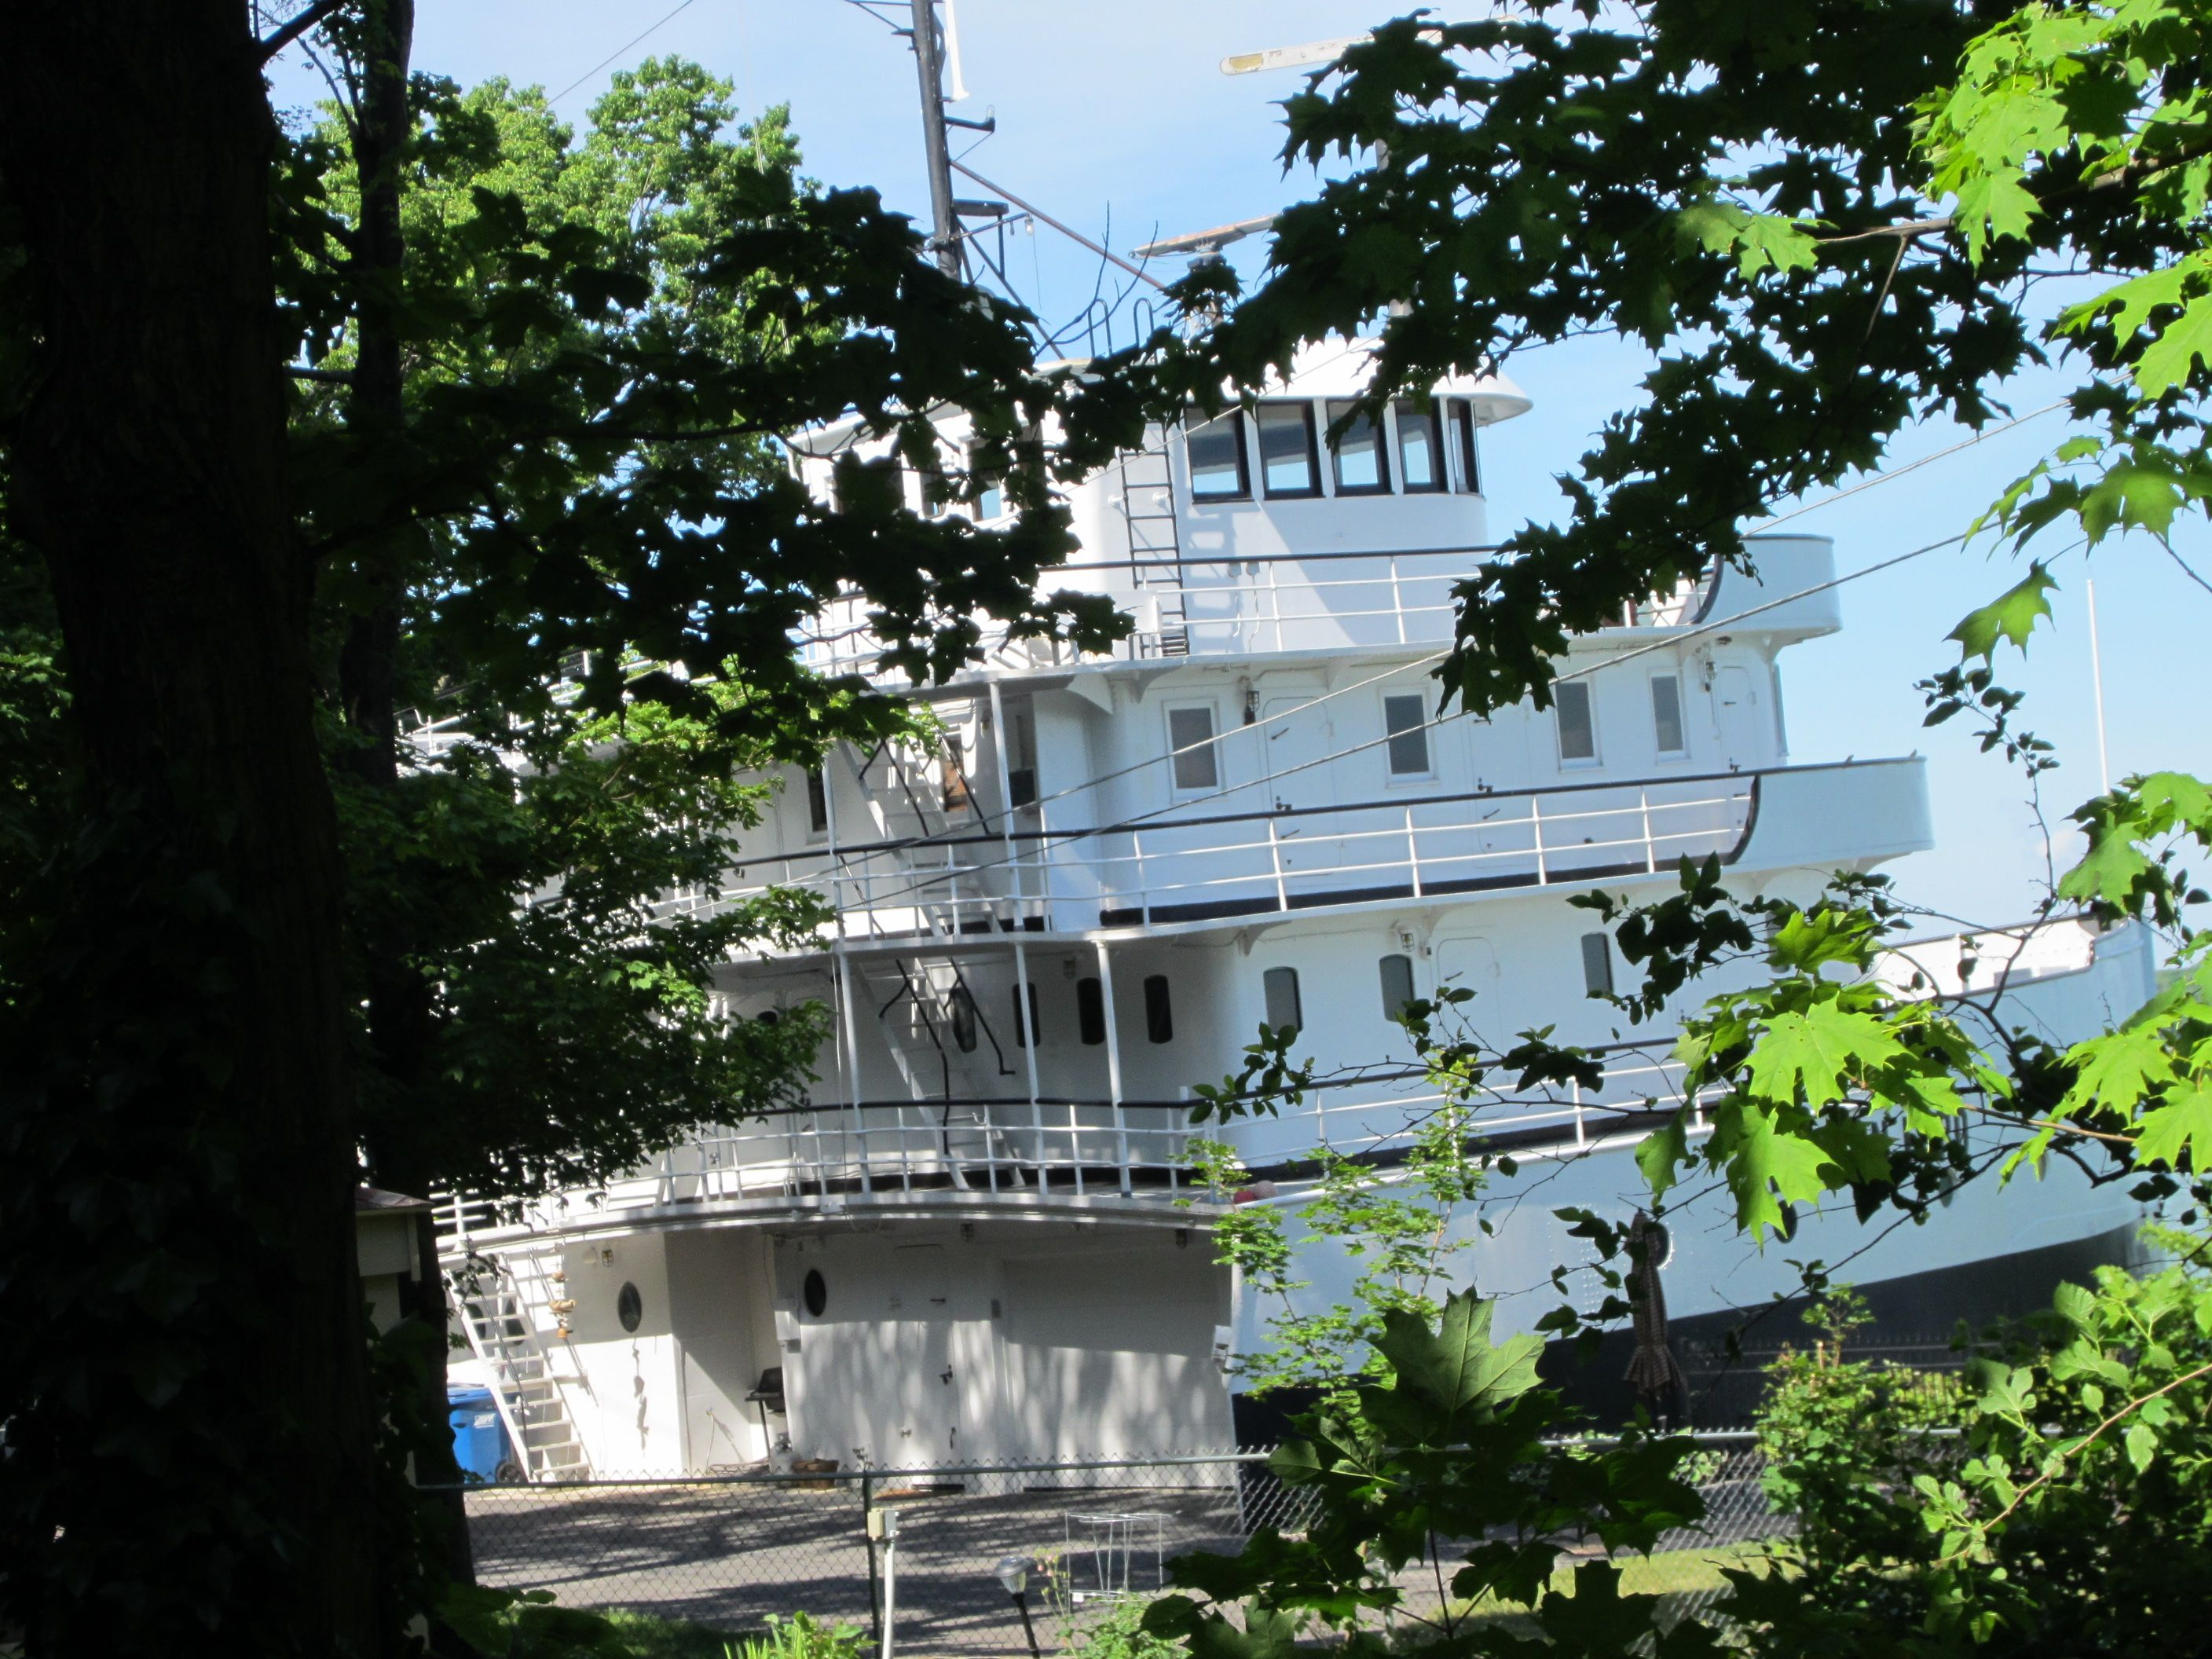 Benson Ford House The Benson Ford Boat House South Bass Island Put In Bay